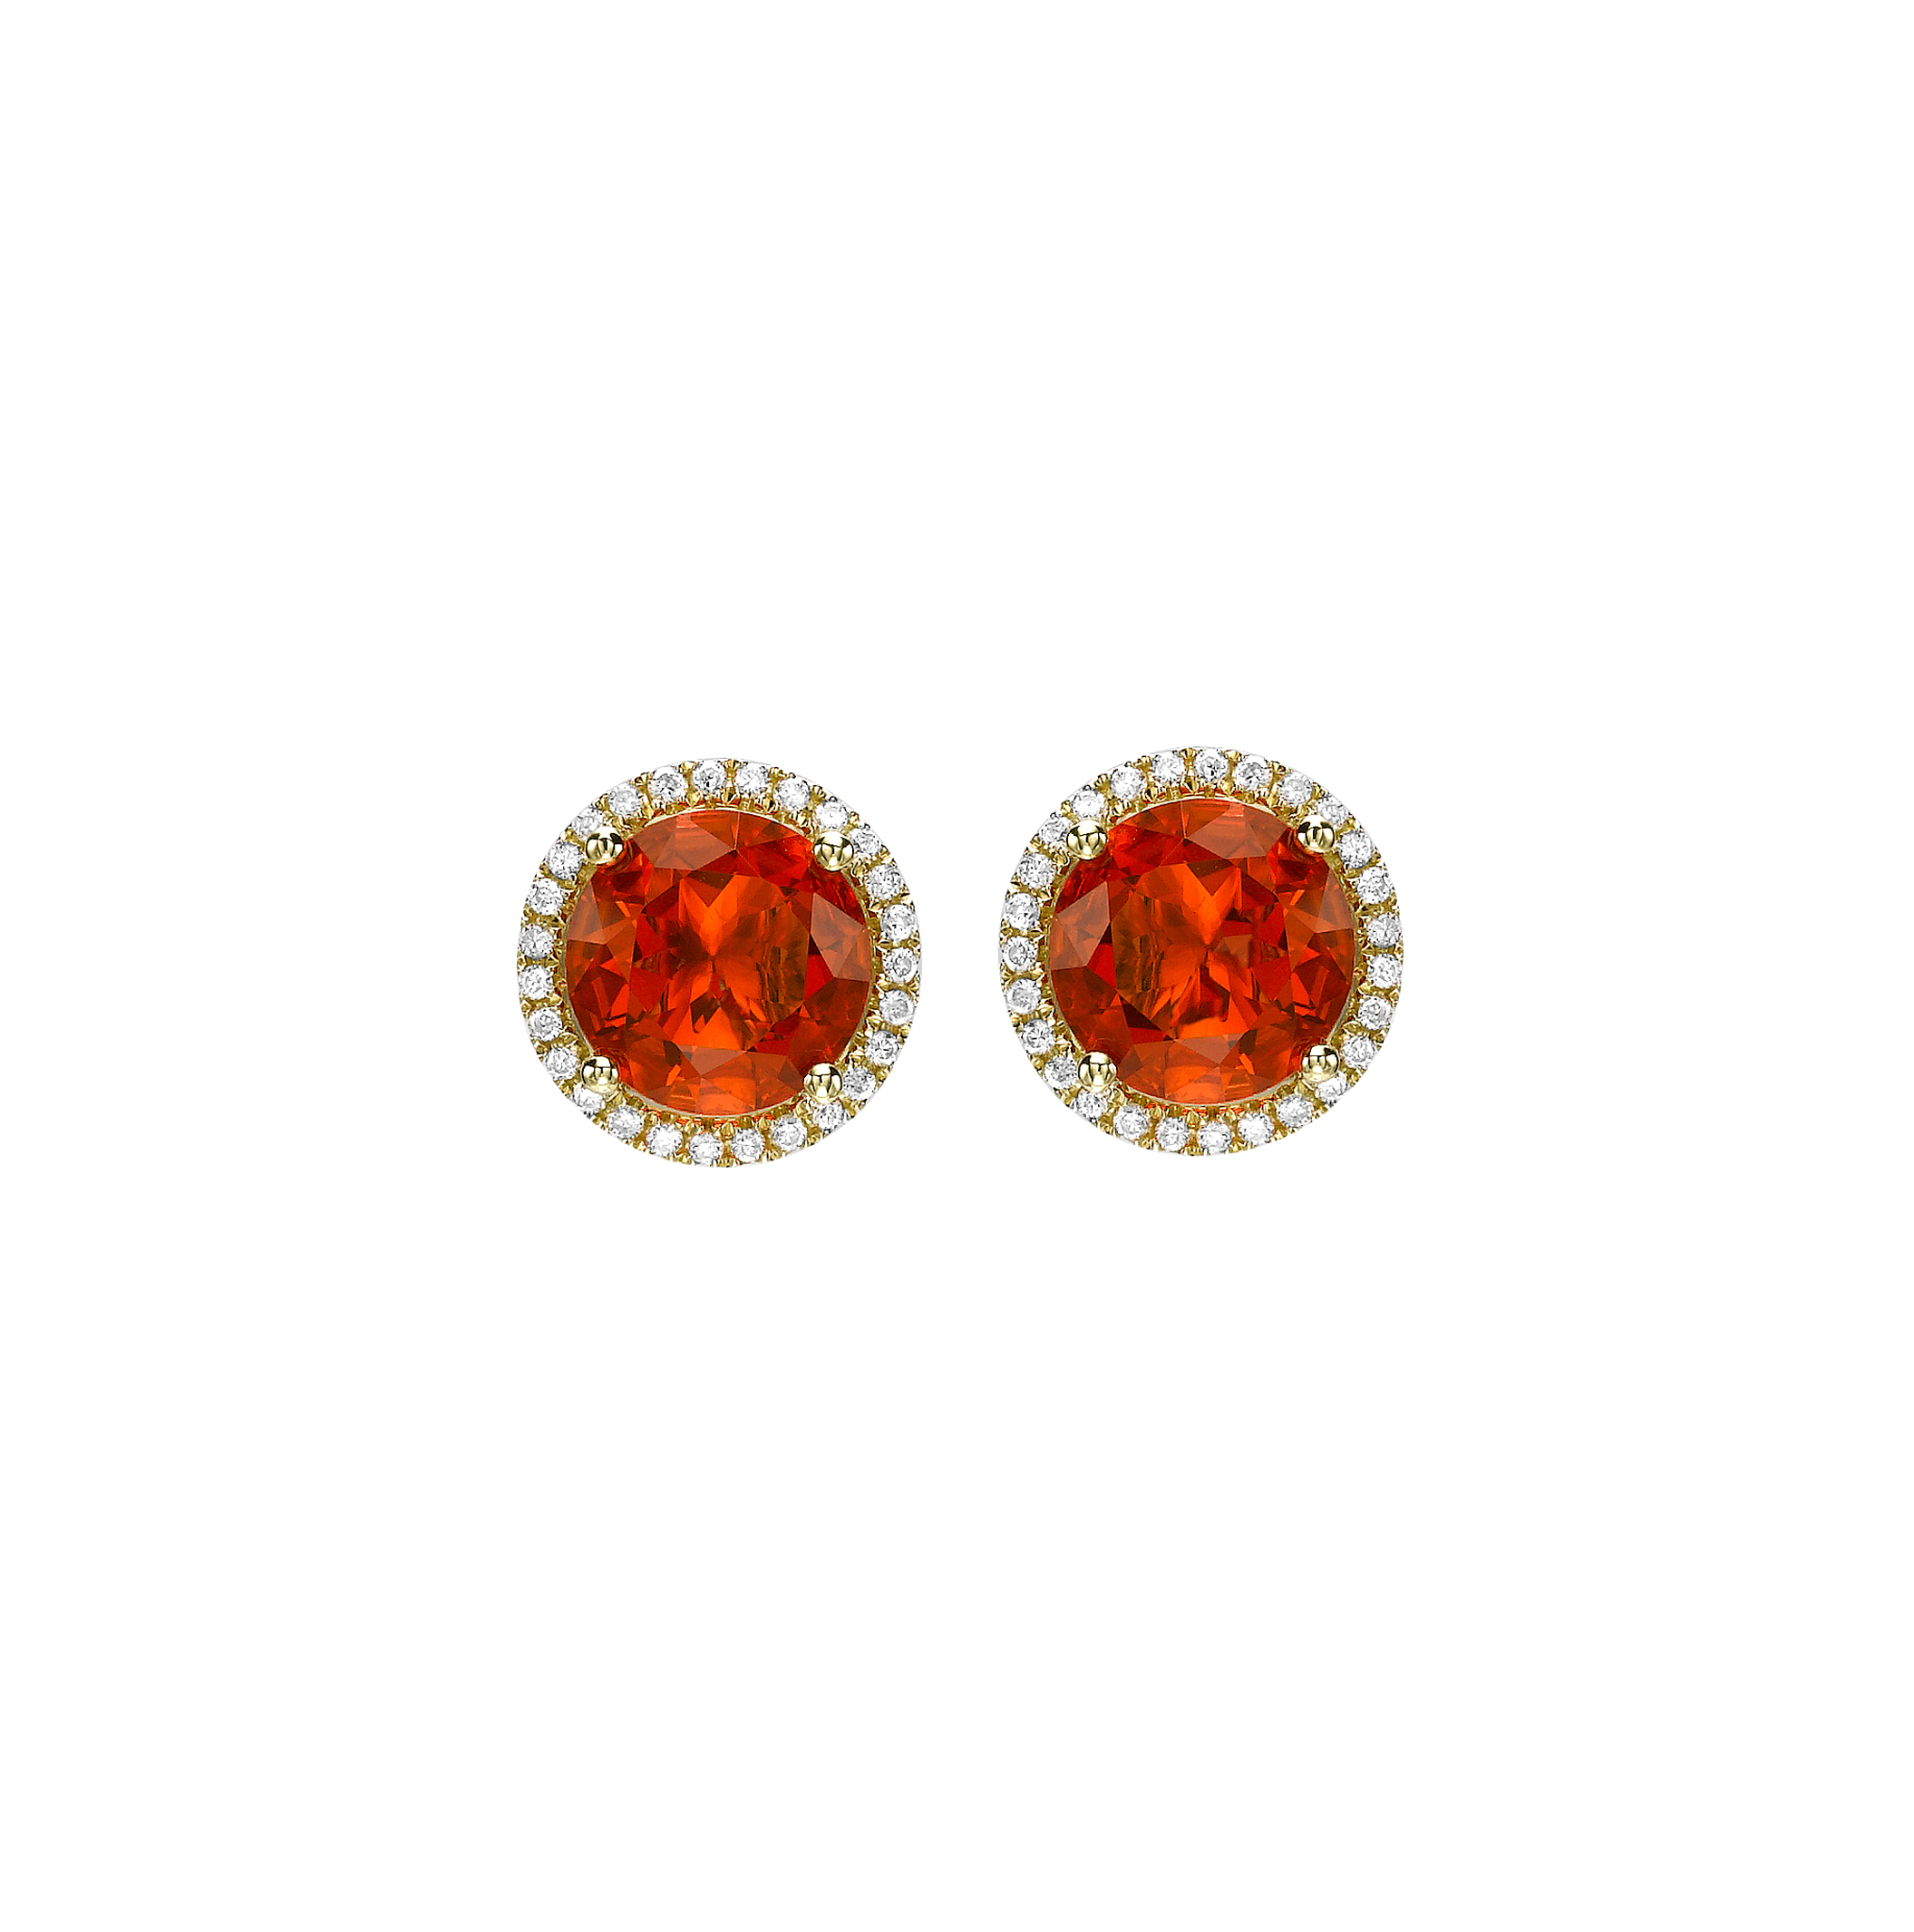 0948c34d9 An exclusive addition to the Grace Collection, Kiki's most popular studs  are now available in the rare and exquisite fire opal.